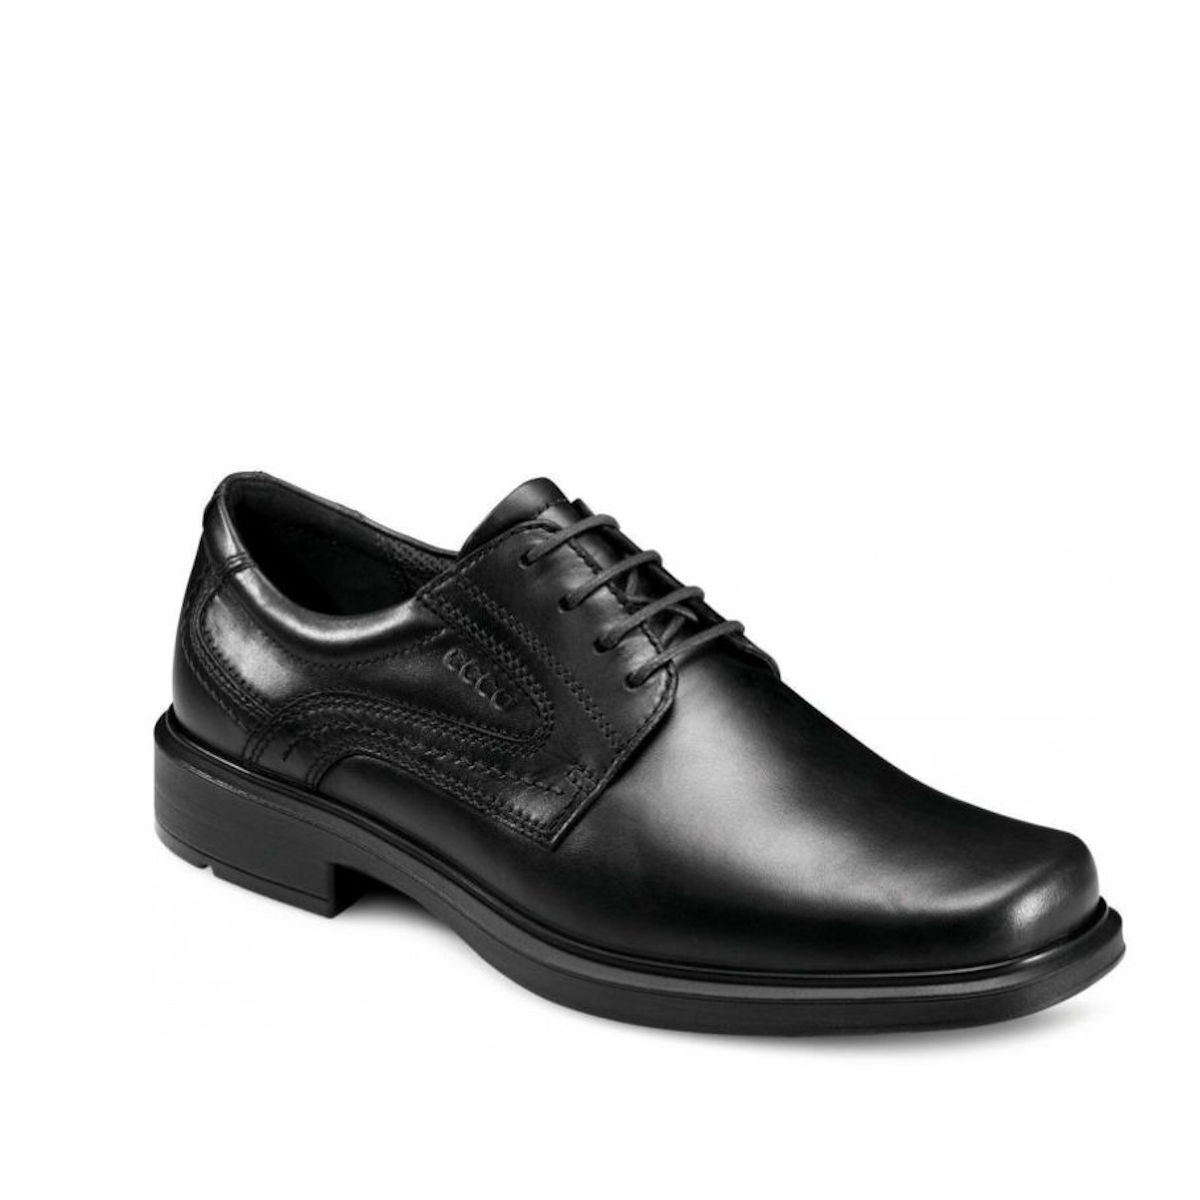 ECCO Helsinki 5014400101 - Mens Lace Up Black Formal Shoe